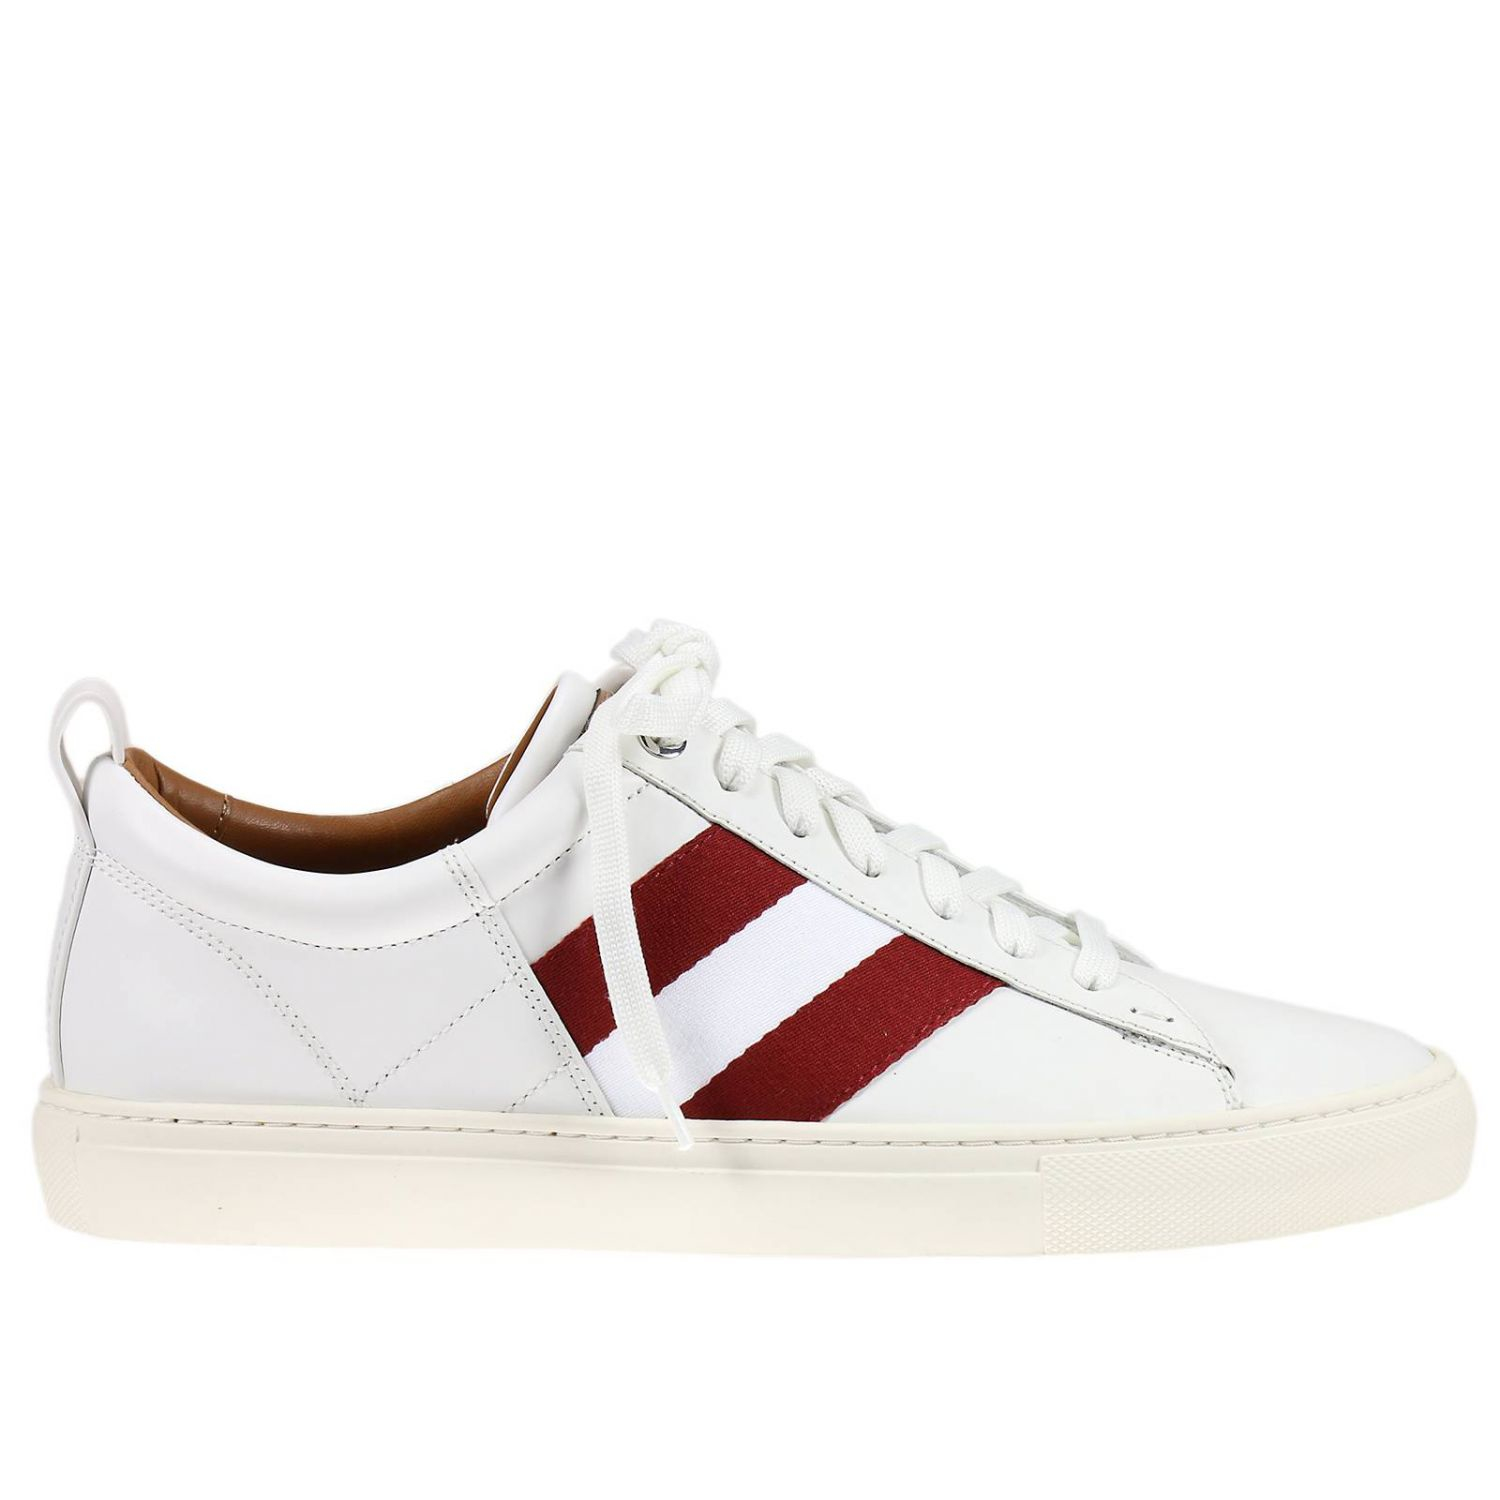 Bally Sneakers Shoes Man In White For Men